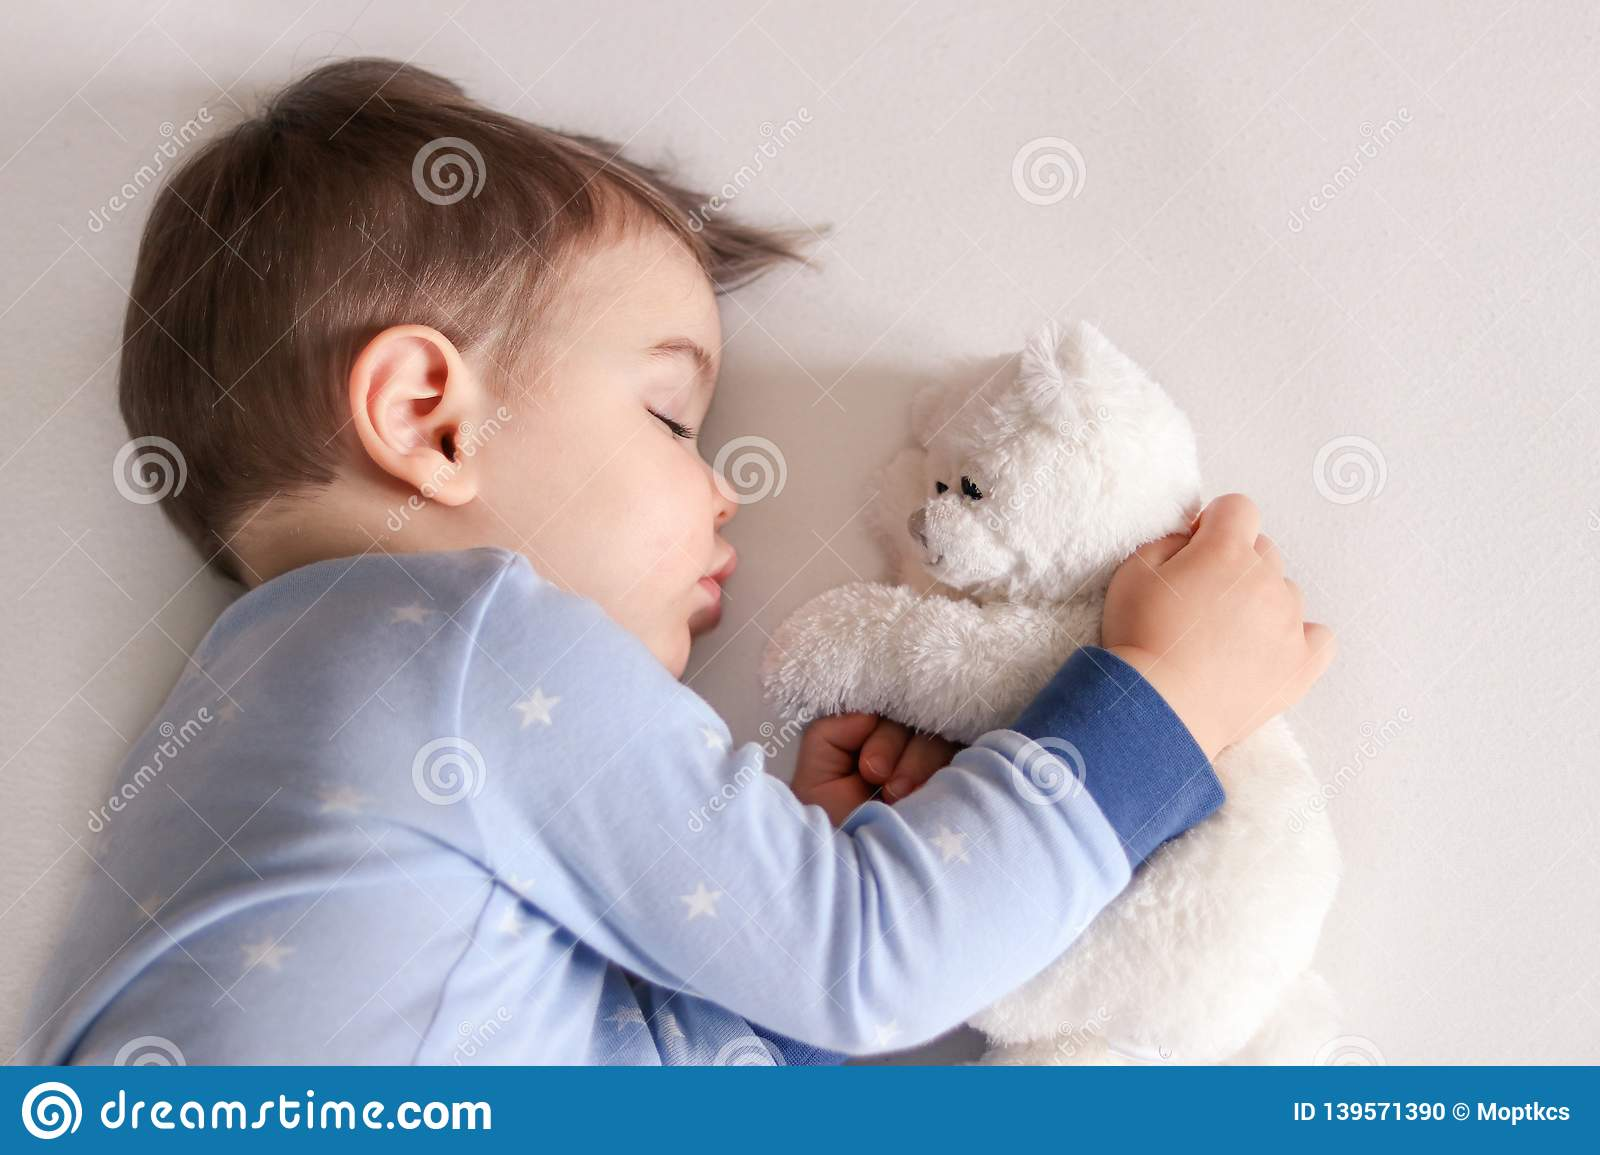 Close up portrait of cute little baby boy in light blue pajamas sleeping peacefully on bed at home hugging white soft teddy bear t